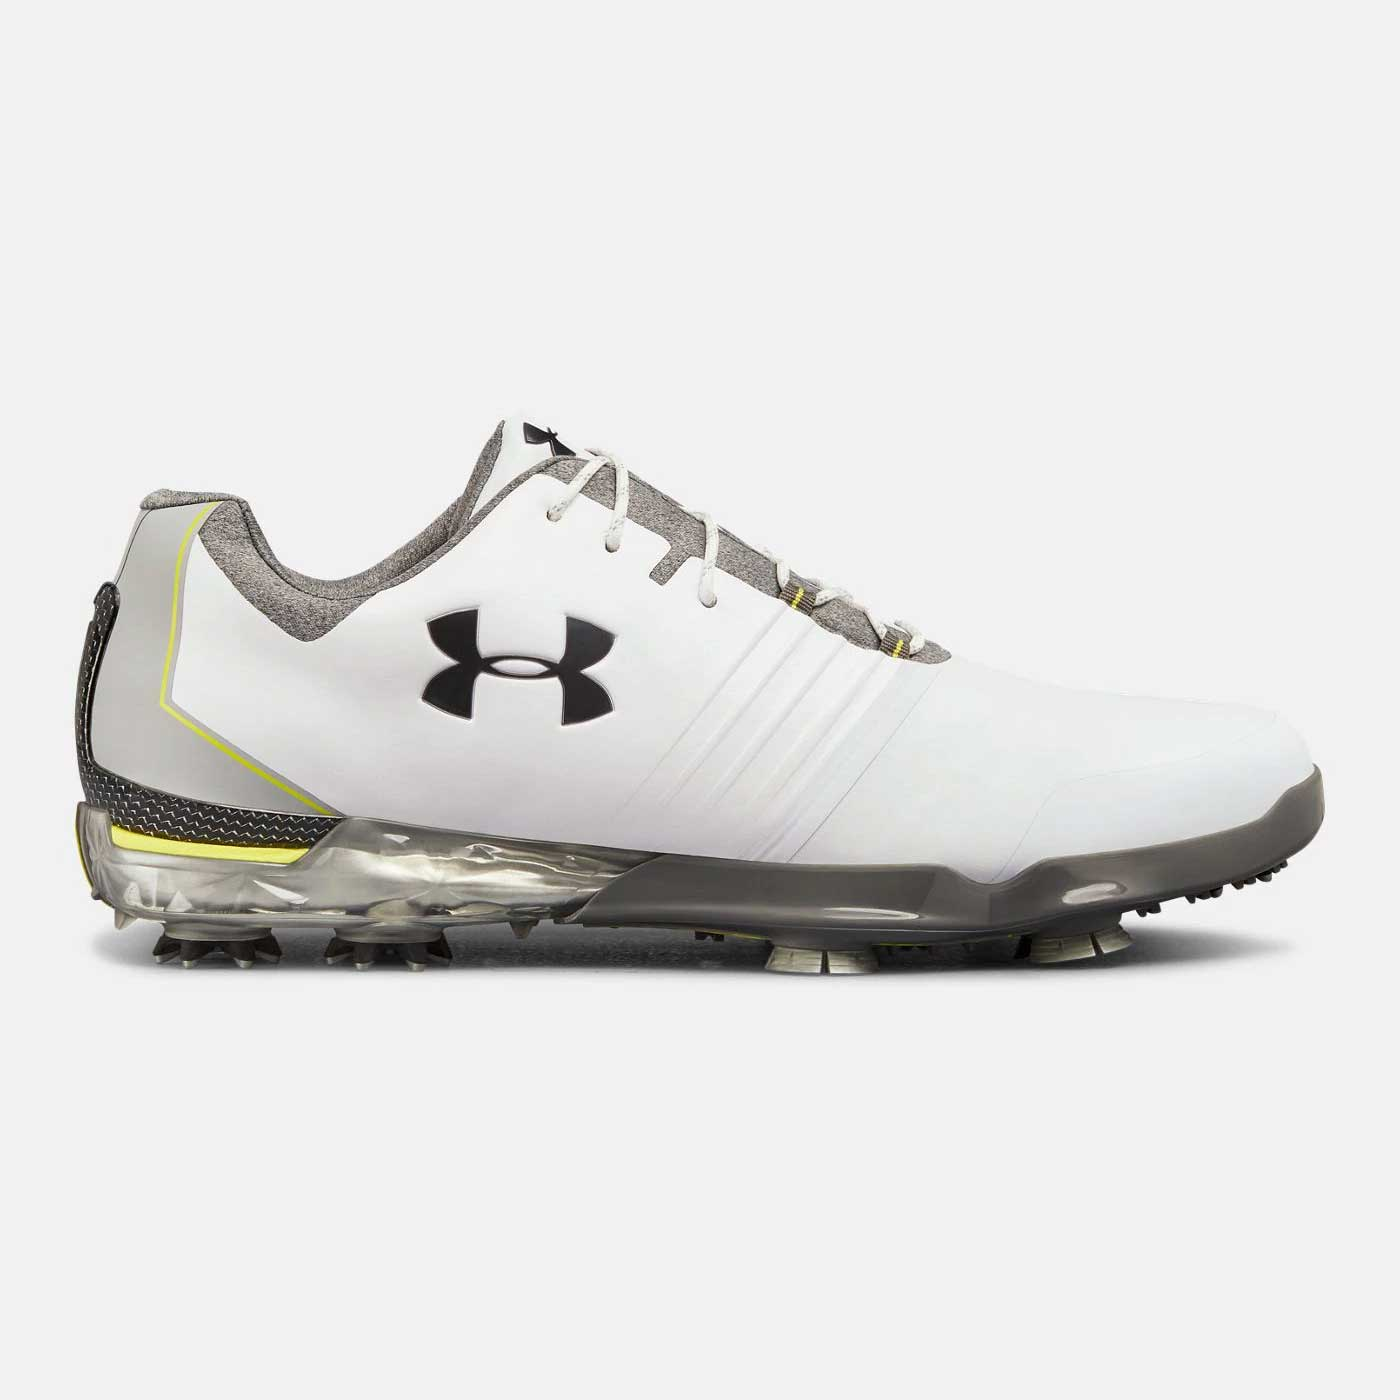 Under Armour Match Play Golf Shoe